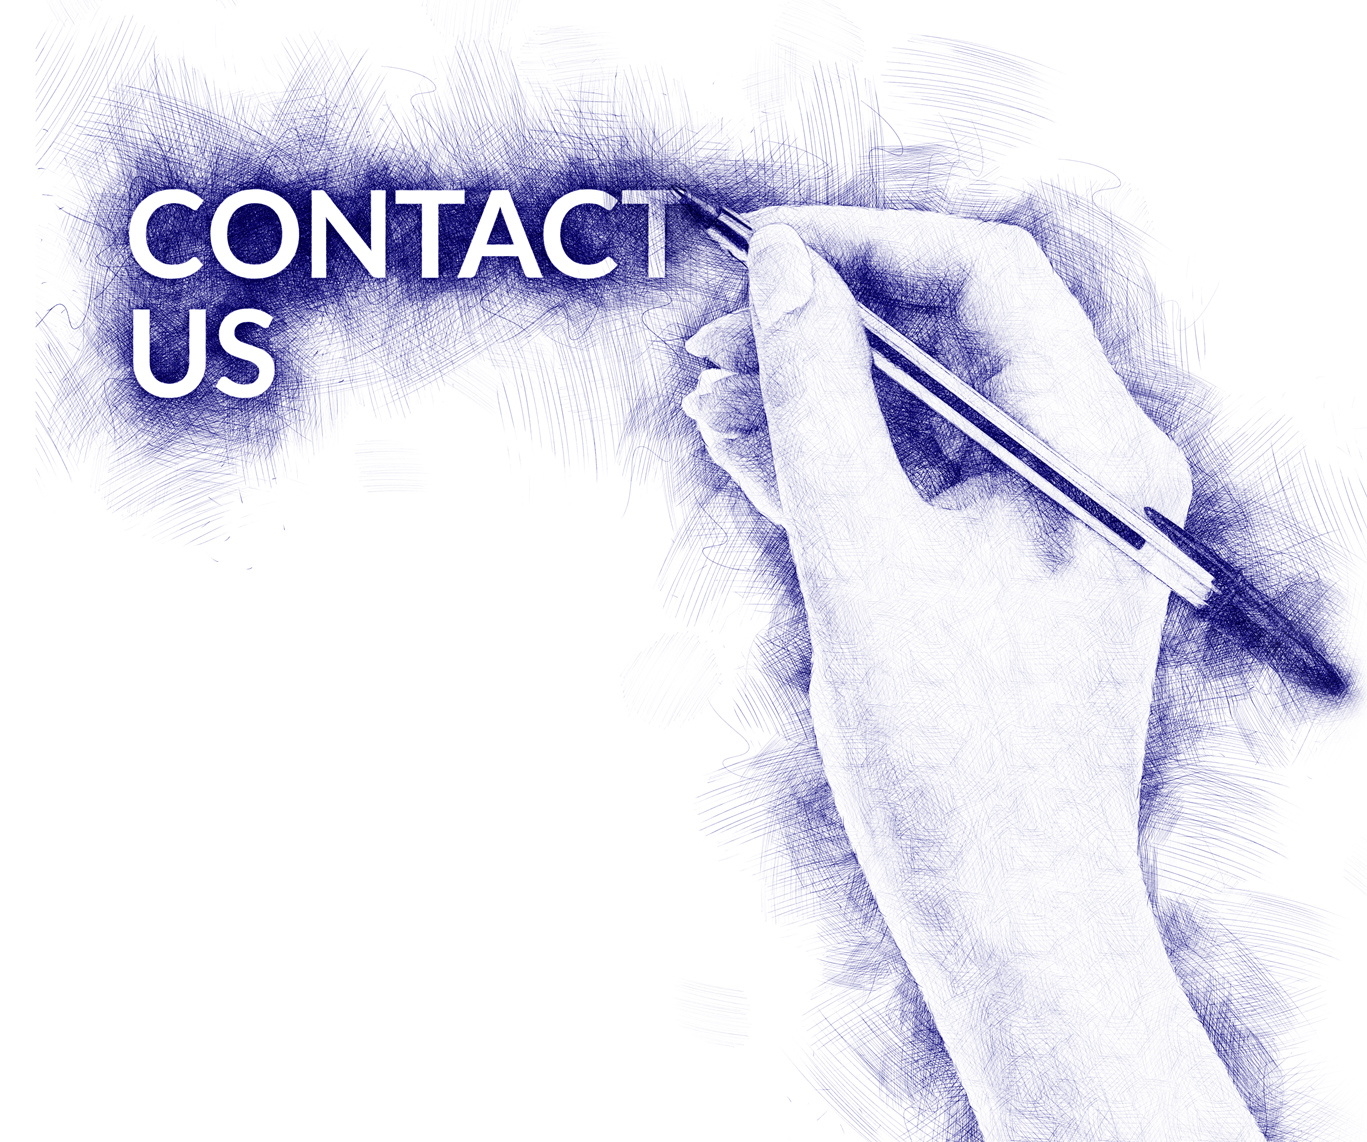 hand written contact us with BIC pen